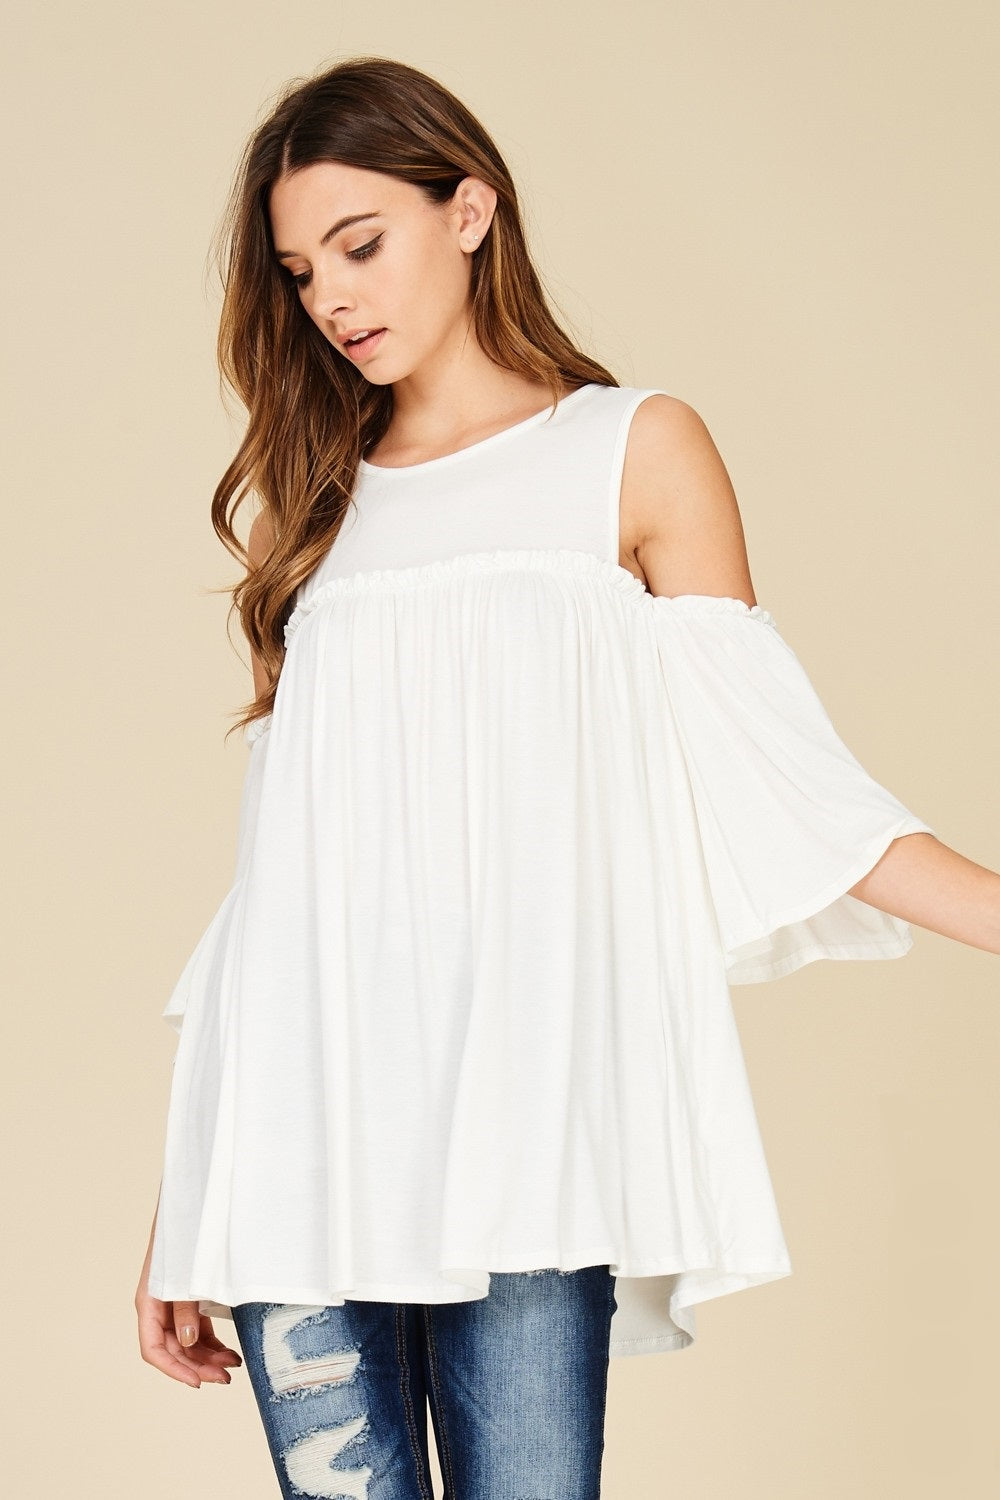 White cold shoulder knit tunic top with three quarter bell sleeves